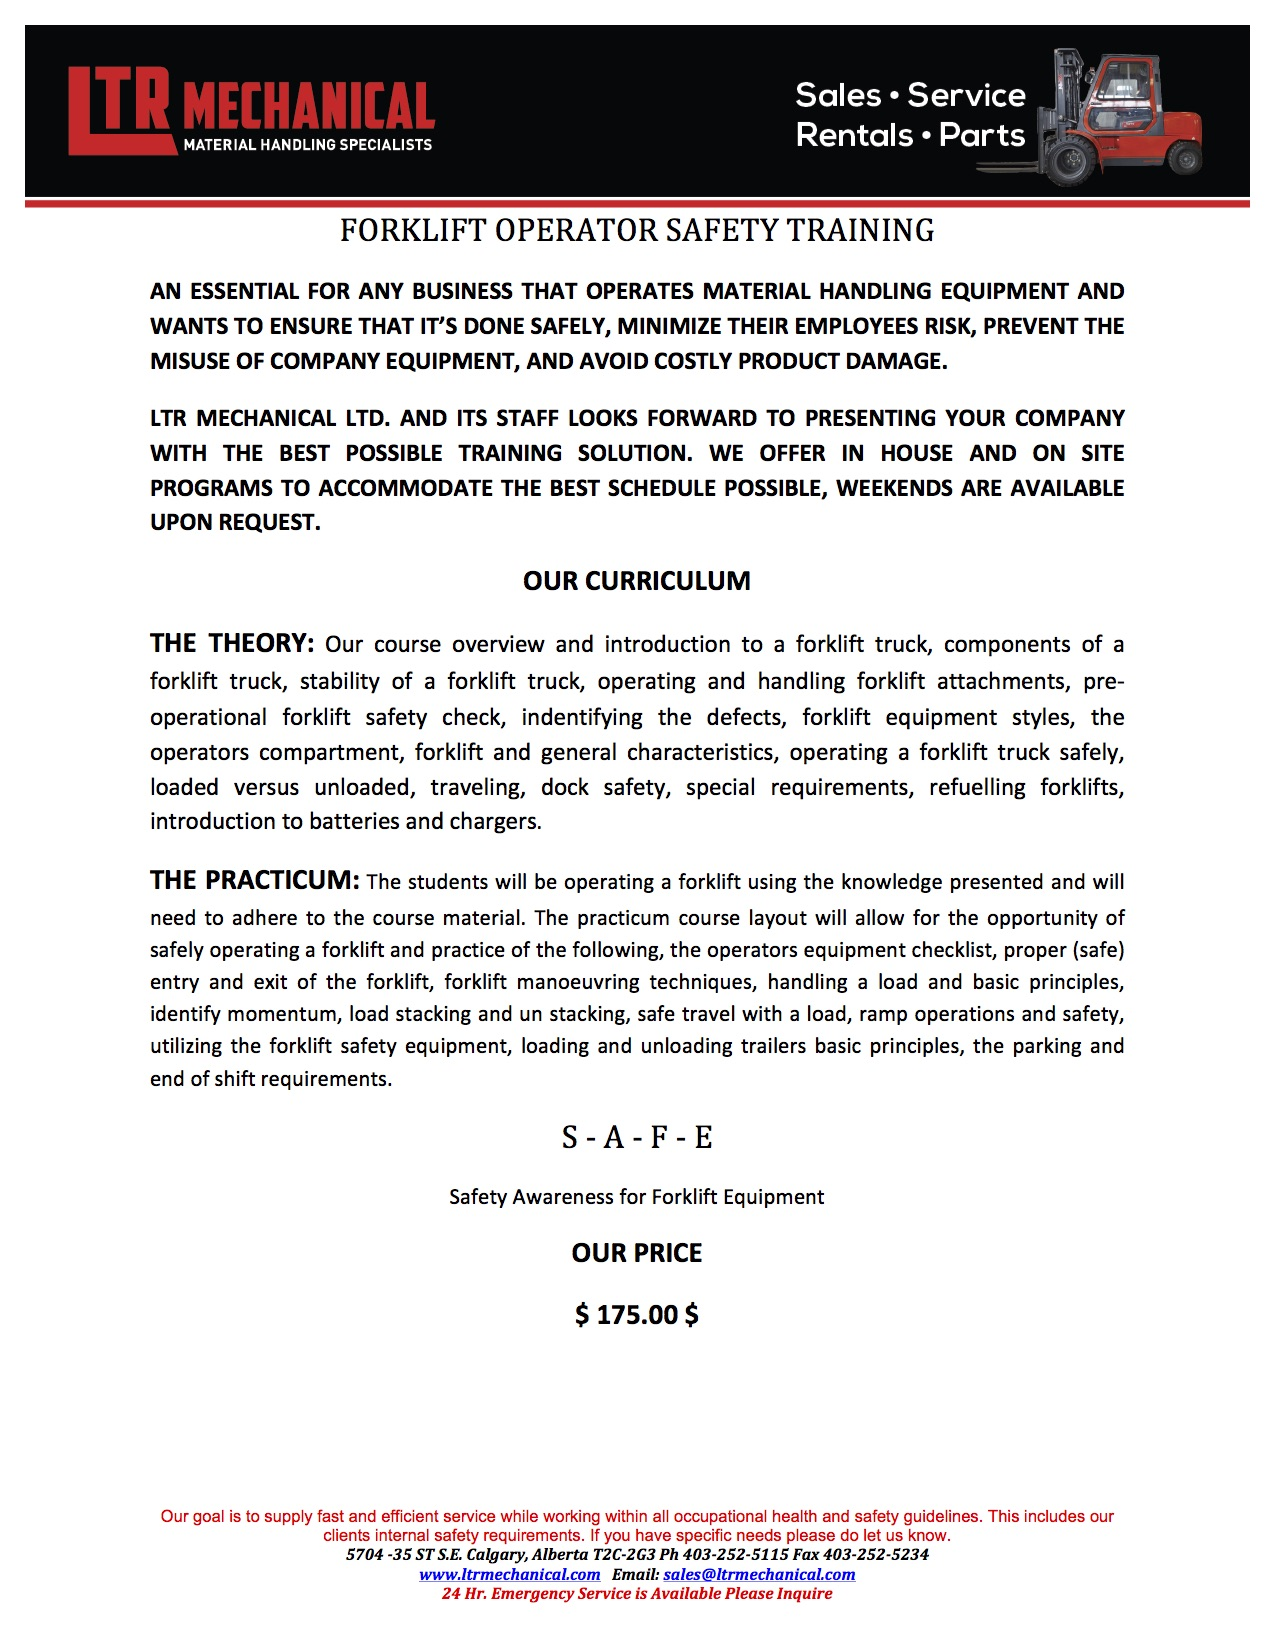 Forklift Operator Safety Training Information Image